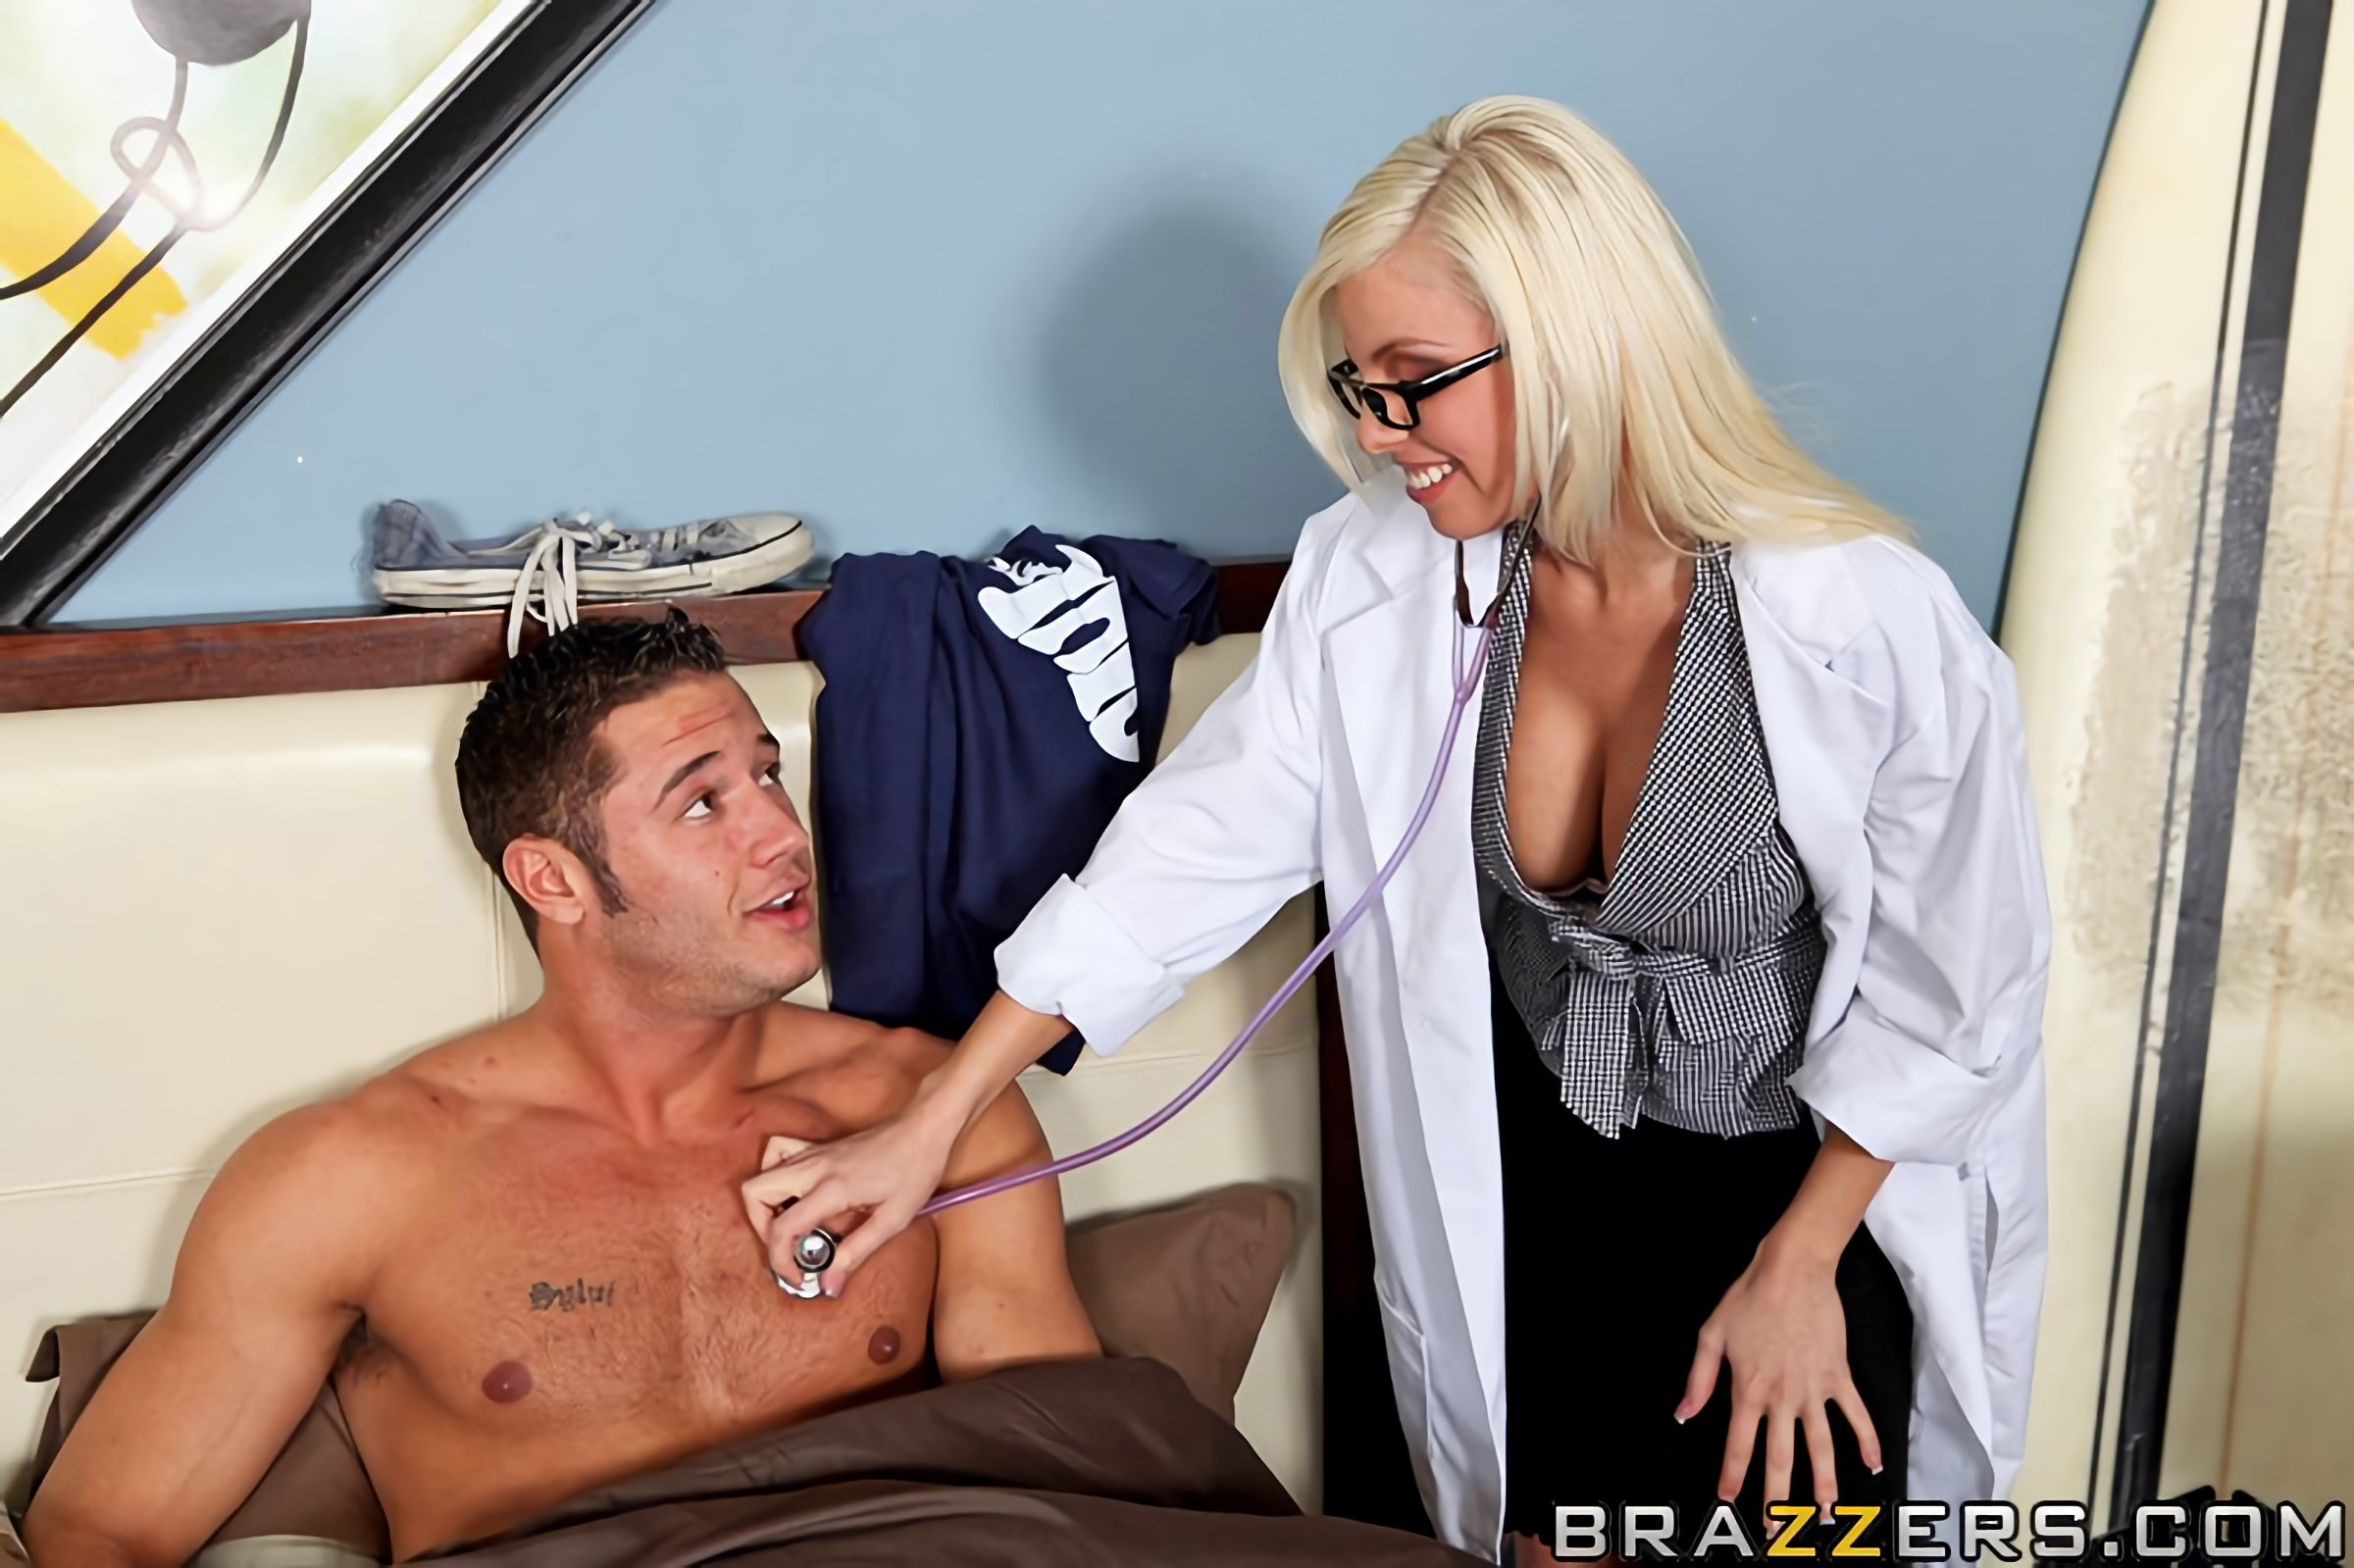 Brazzers 'CataTITic State' starring Britney Amber (Photo 5)